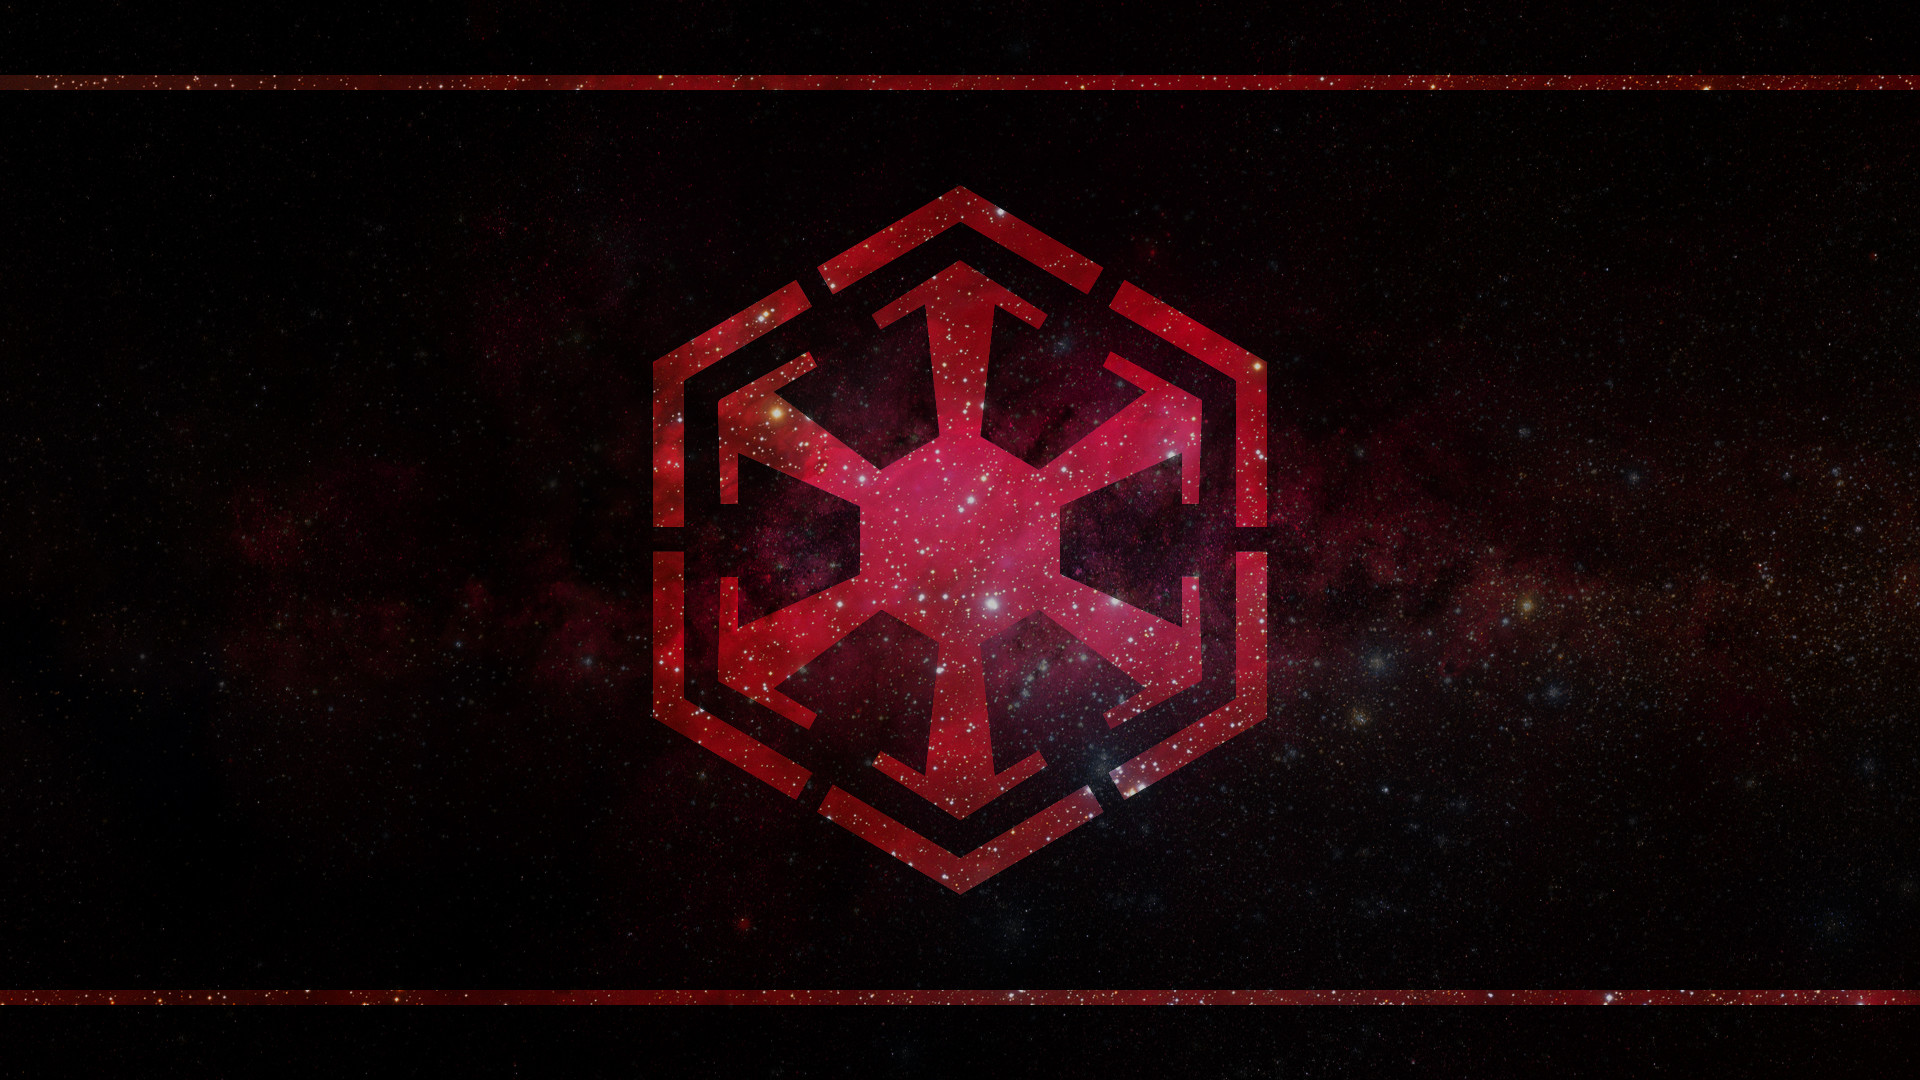 1920x1080 SWTOR Wallpaper - Wallpapers Browse · Sith Empire - Desktop by DrBoxHead on  DeviantArt